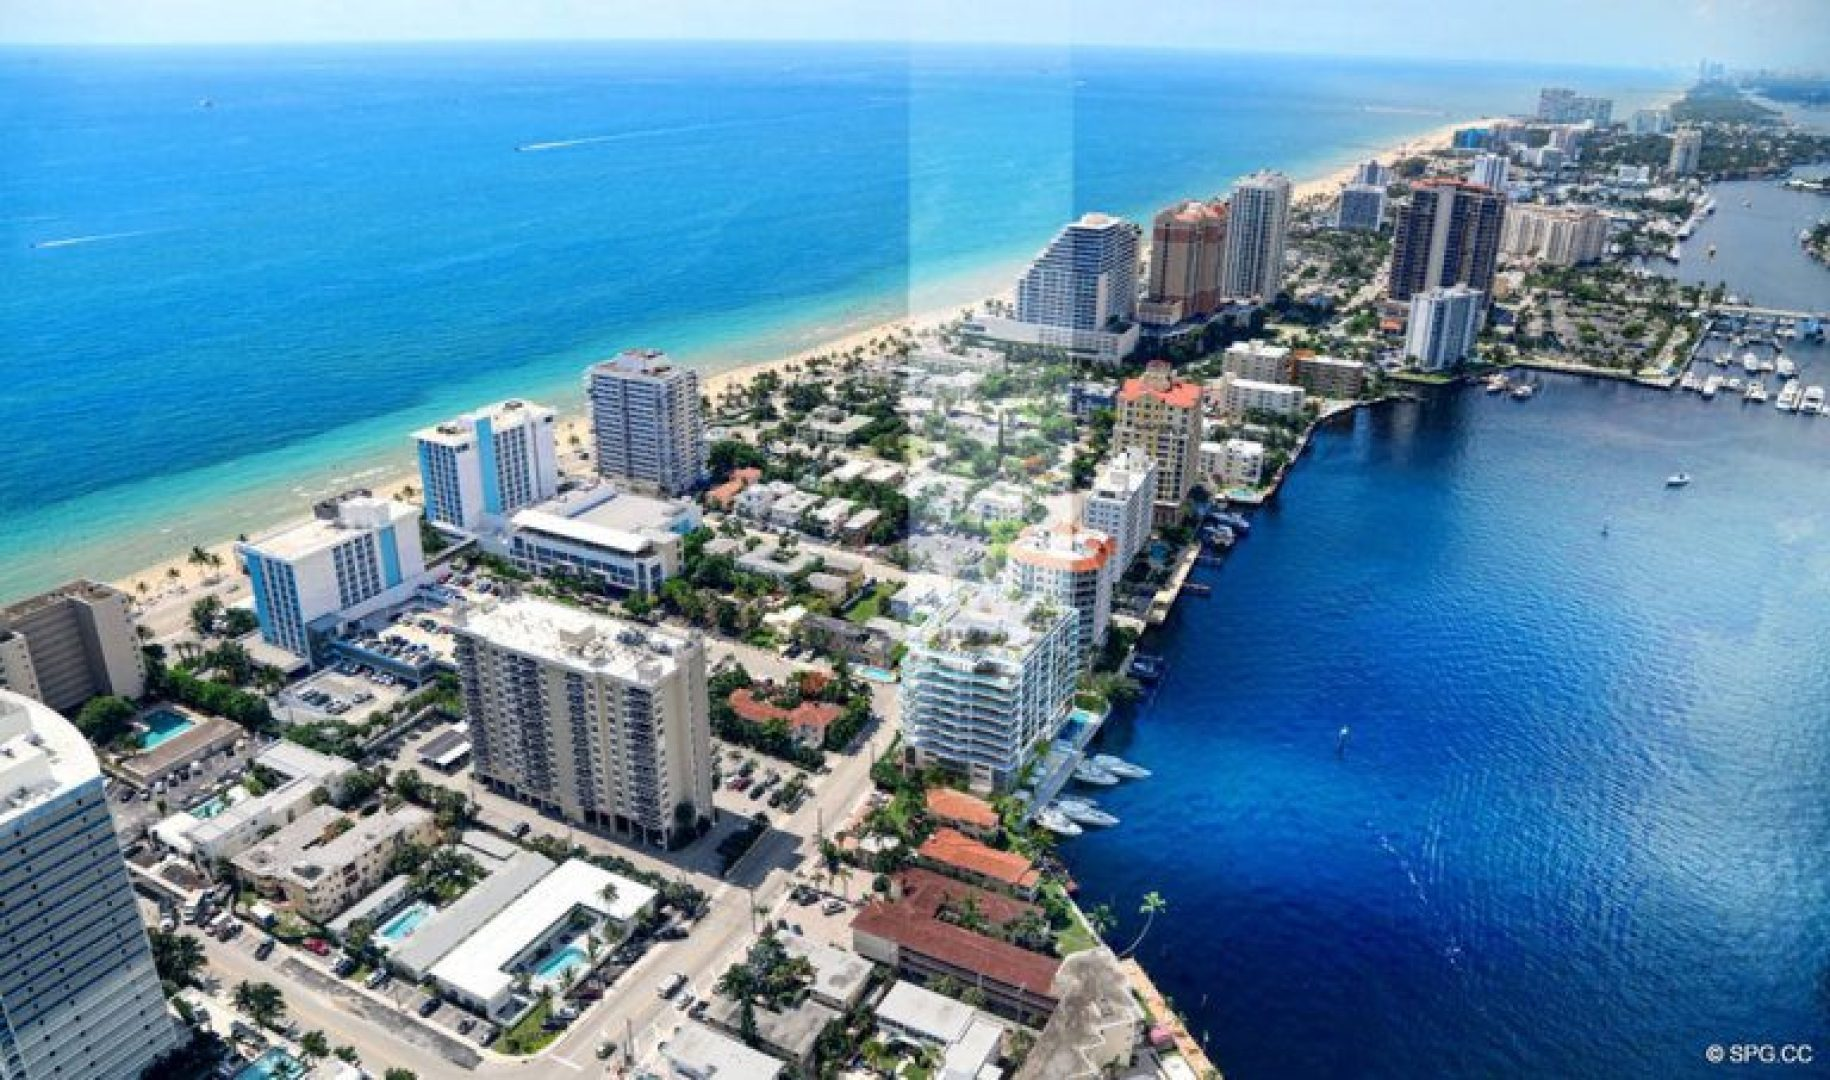 Southern View of 321 at Water's Edge, Luxury Waterfront Condos in Fort Lauderdale, Florida 33304